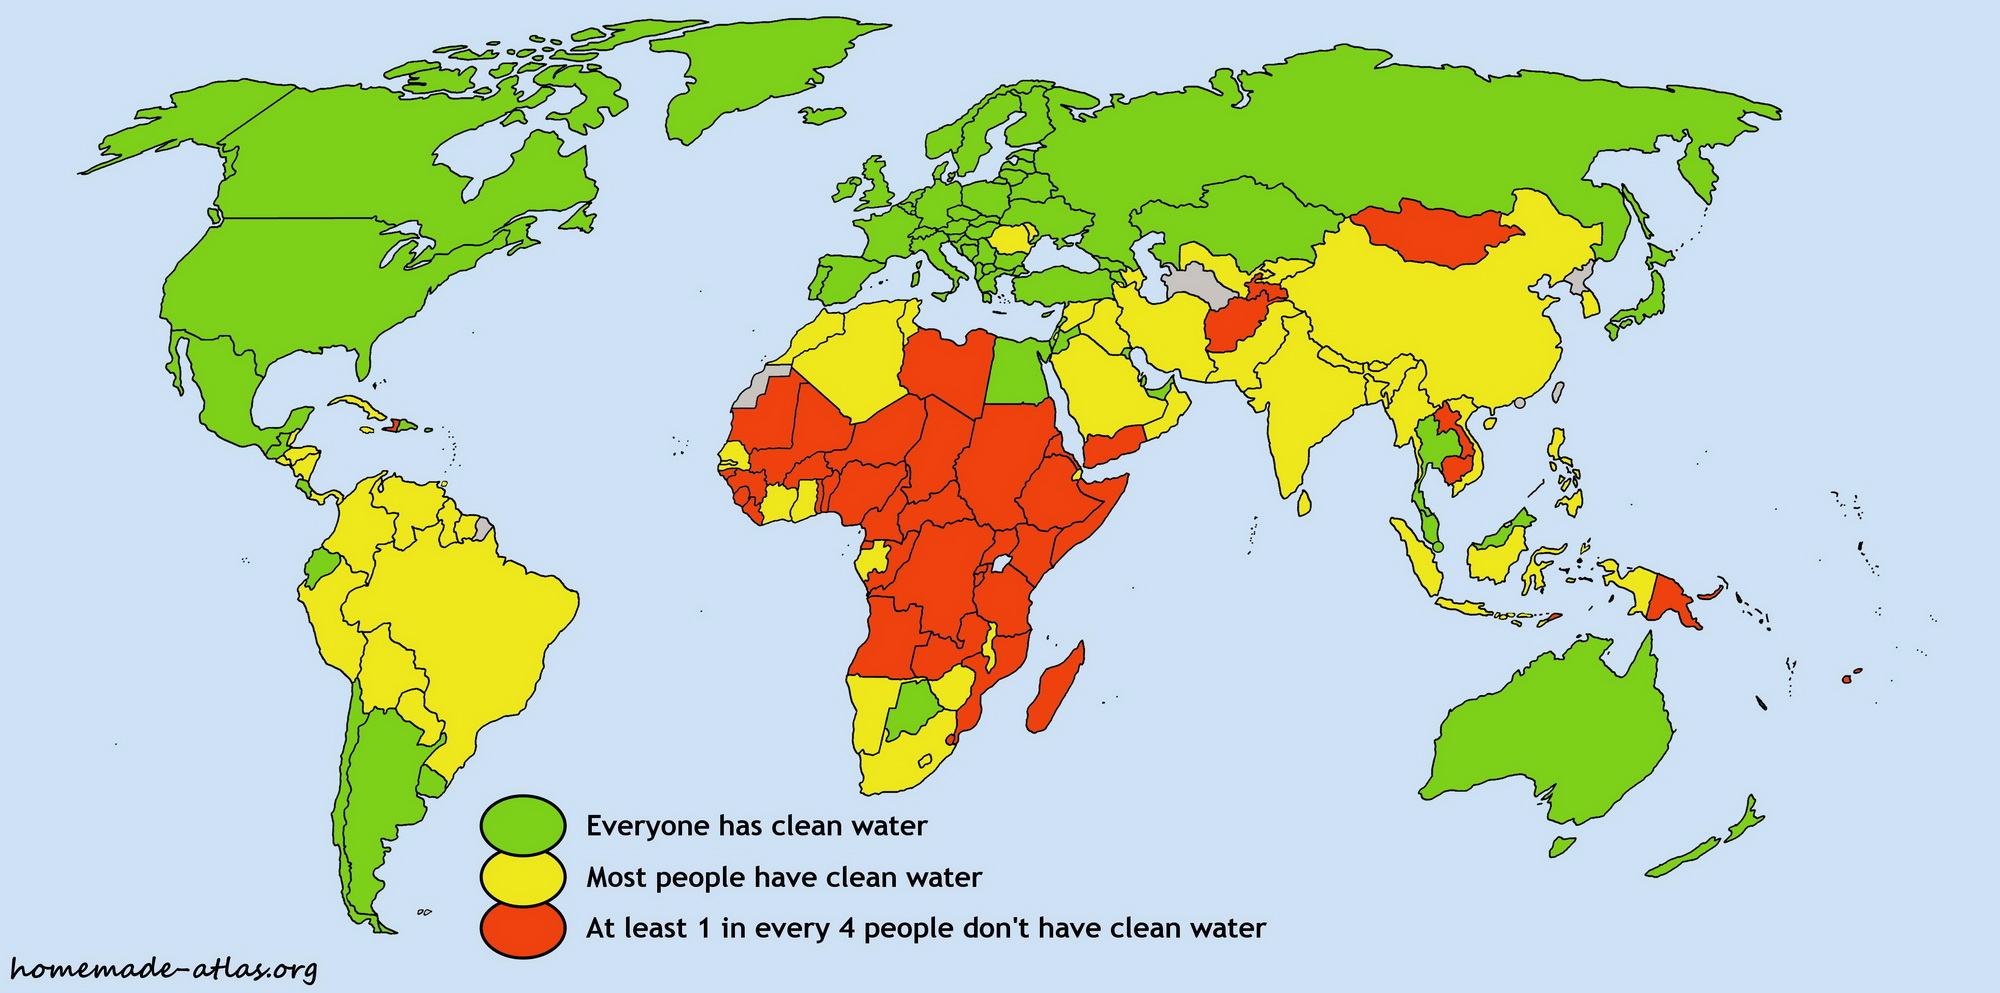 File:Water quality.jpg - Wikimedia Commons